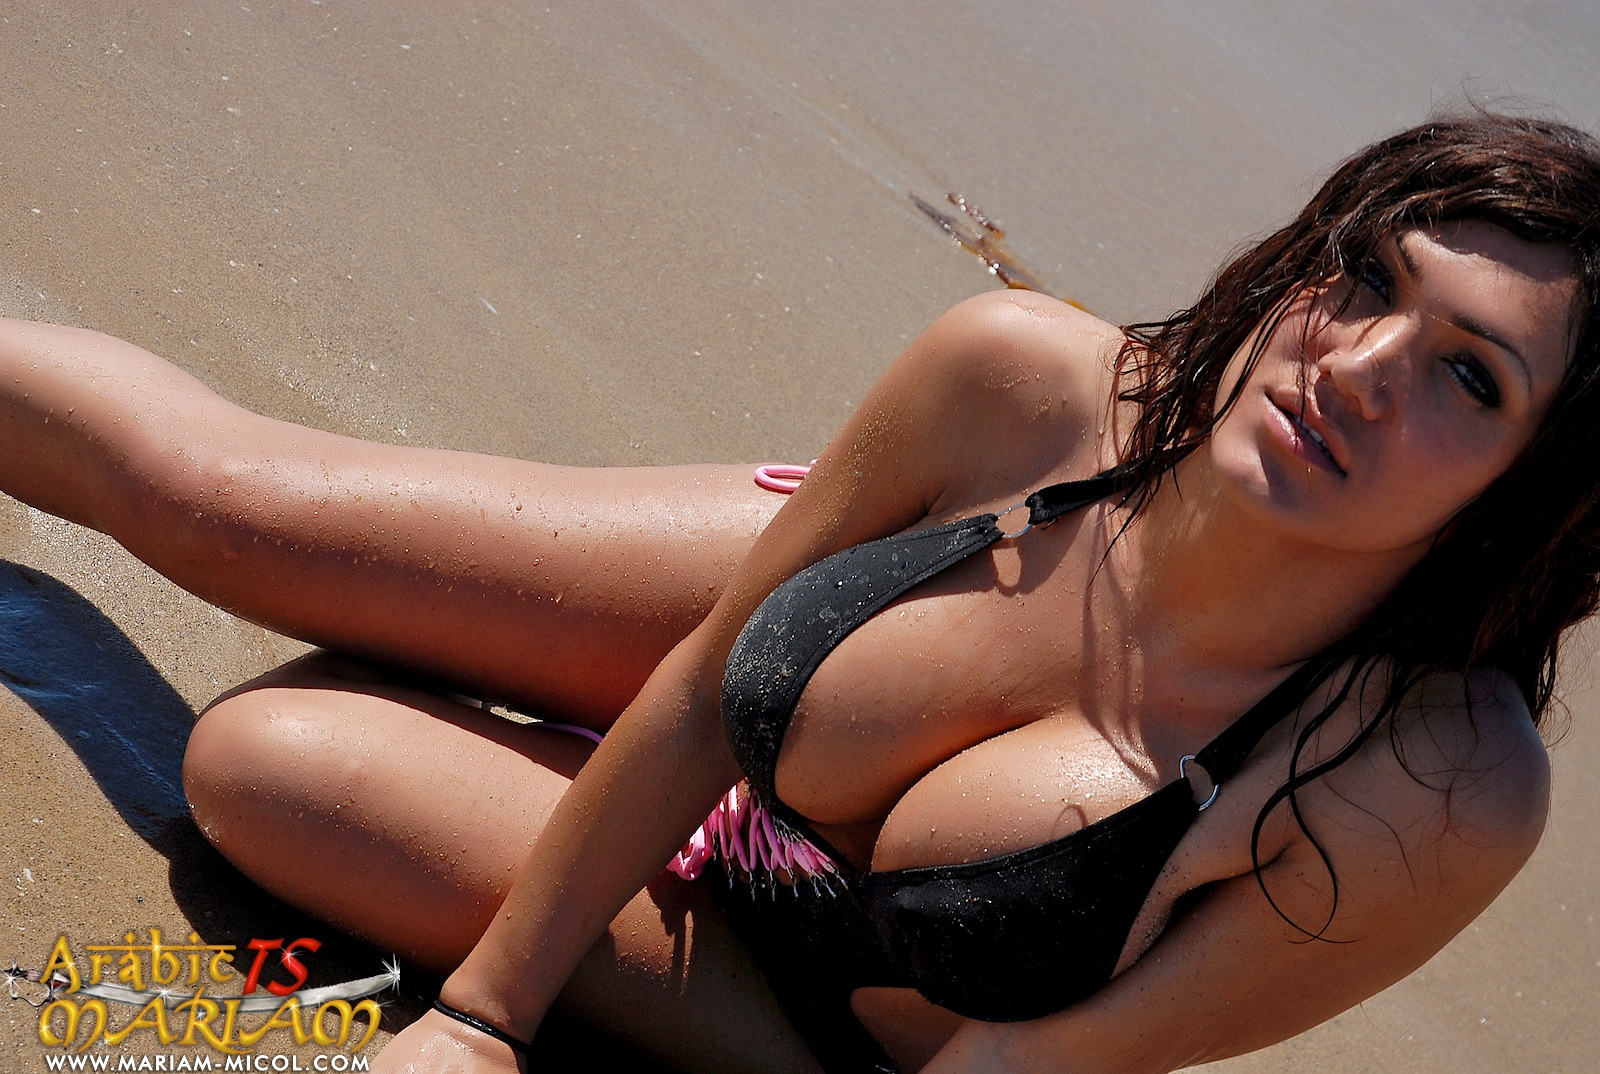 pictures showing for arab shemale beach - www.tophardcoreporn